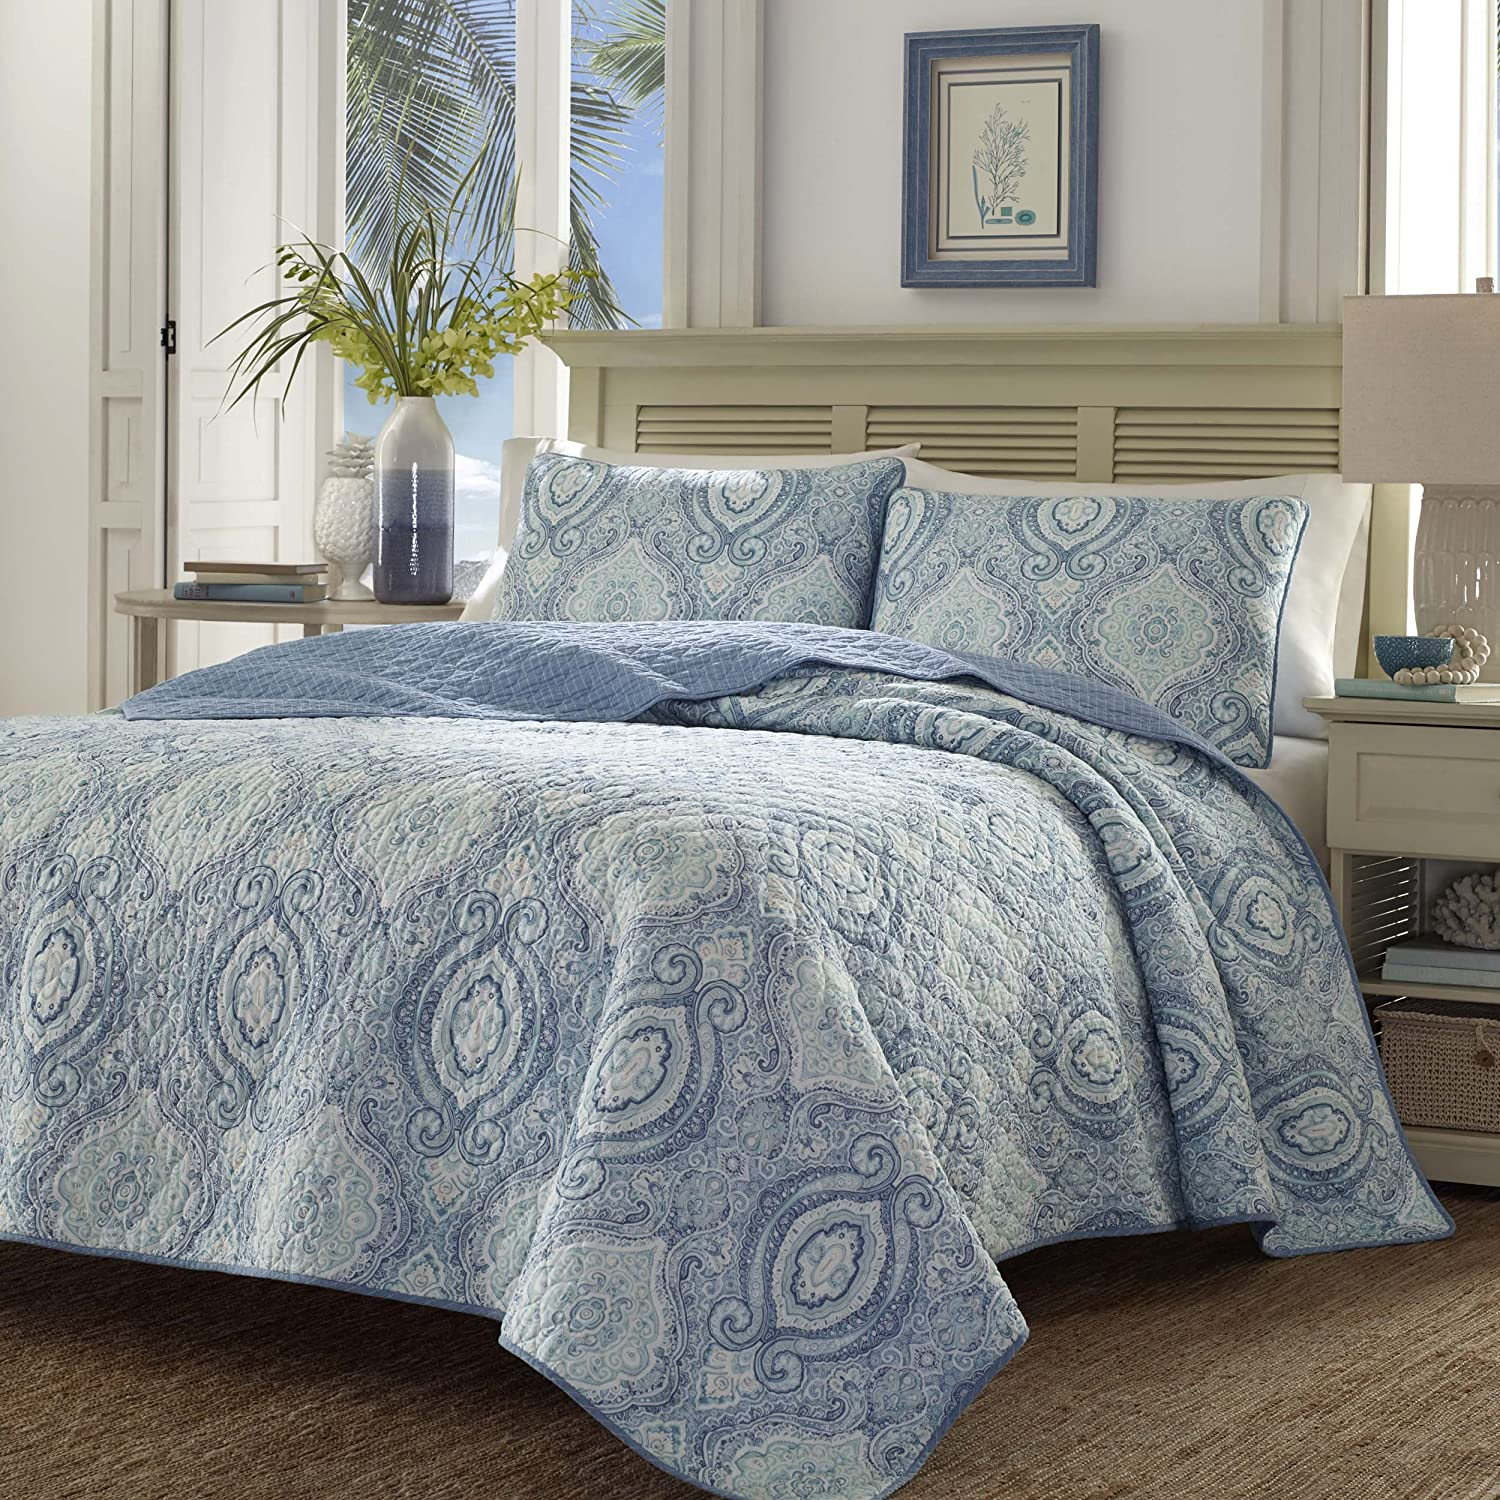 Tommy Bahama 220636 Turtle Cove Caribbean Quilt Set,Harbor Blue,Full/Queen